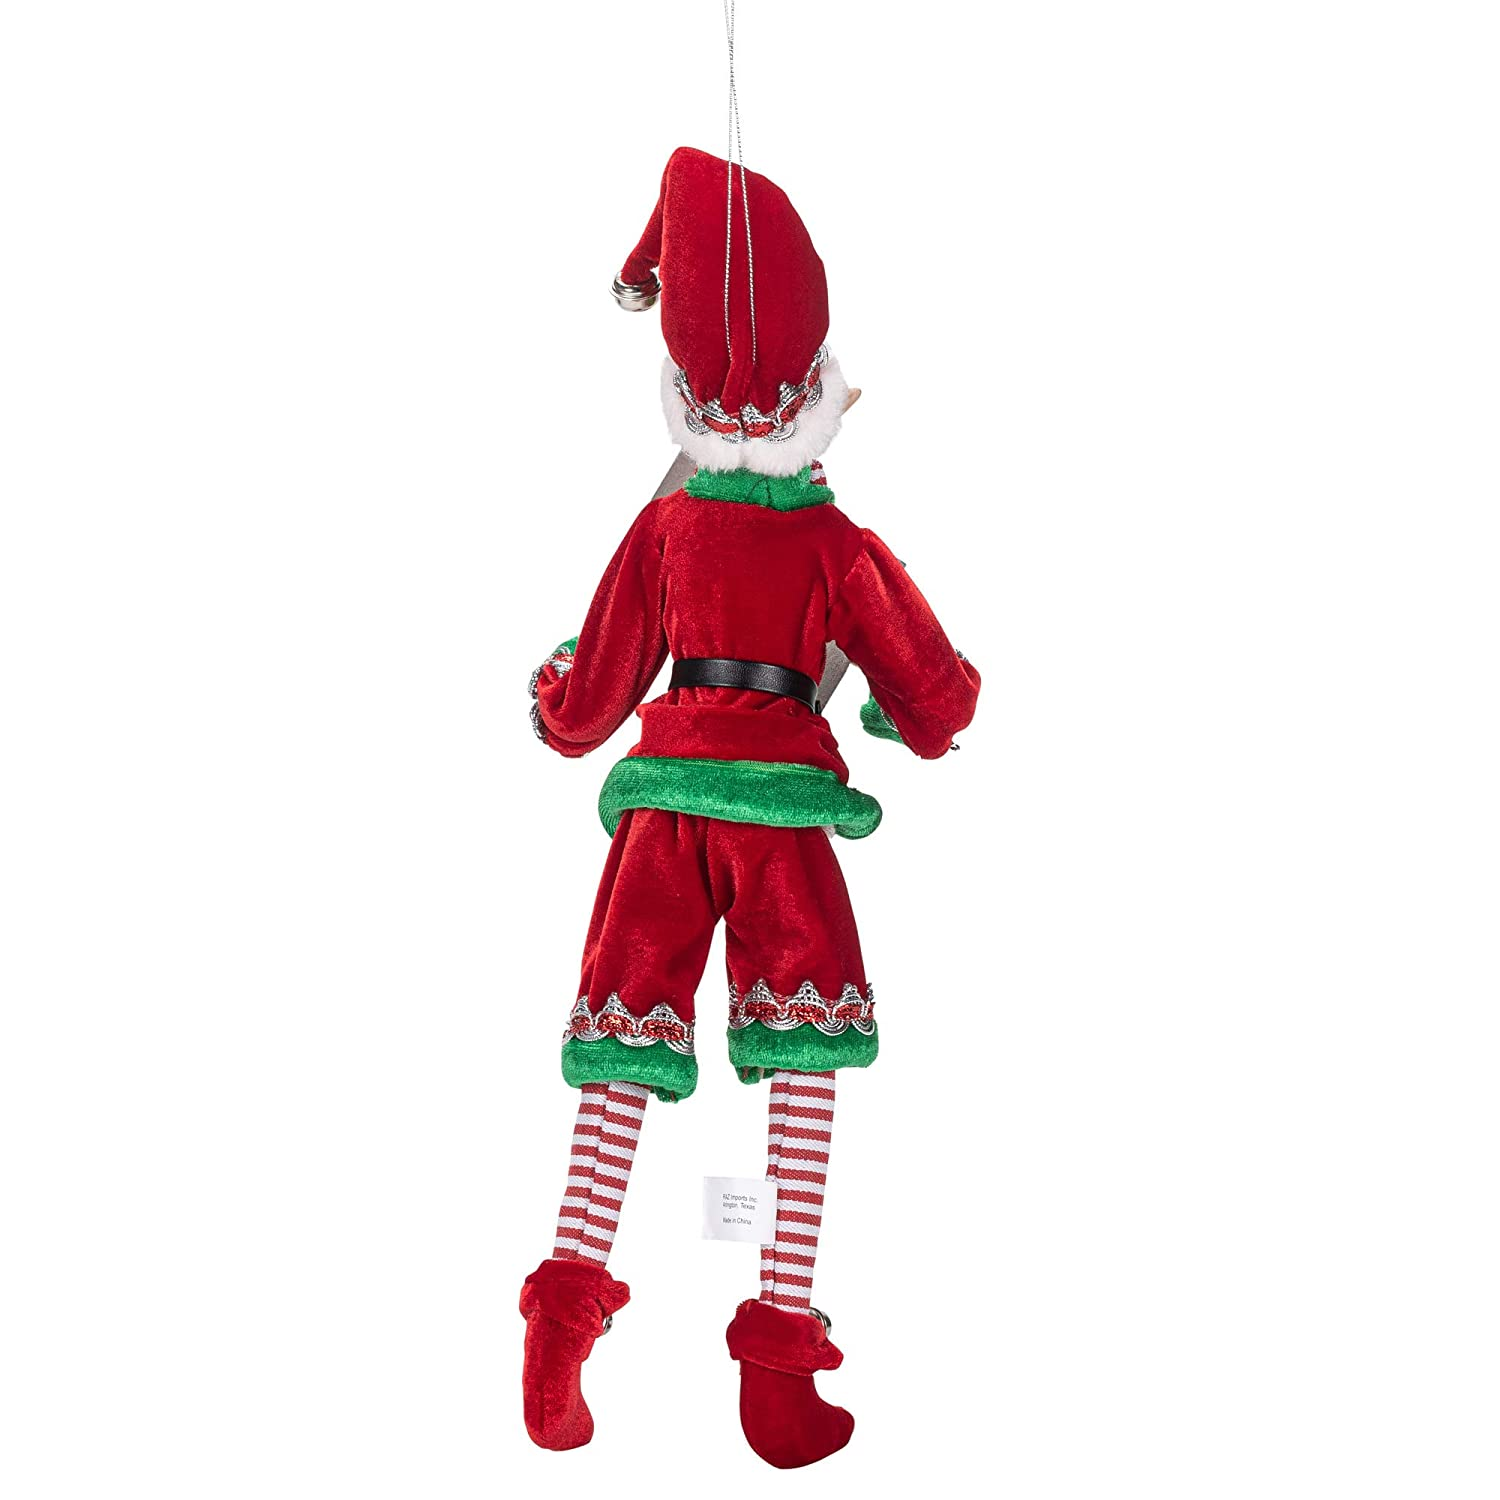 Buy Raz Imports Posable Christmas Elf 16 Tall Red And Green Velvet Outfit With Santa Book 2019 Reindeer Games Holiday Collection Online At Low Prices In India Amazon In